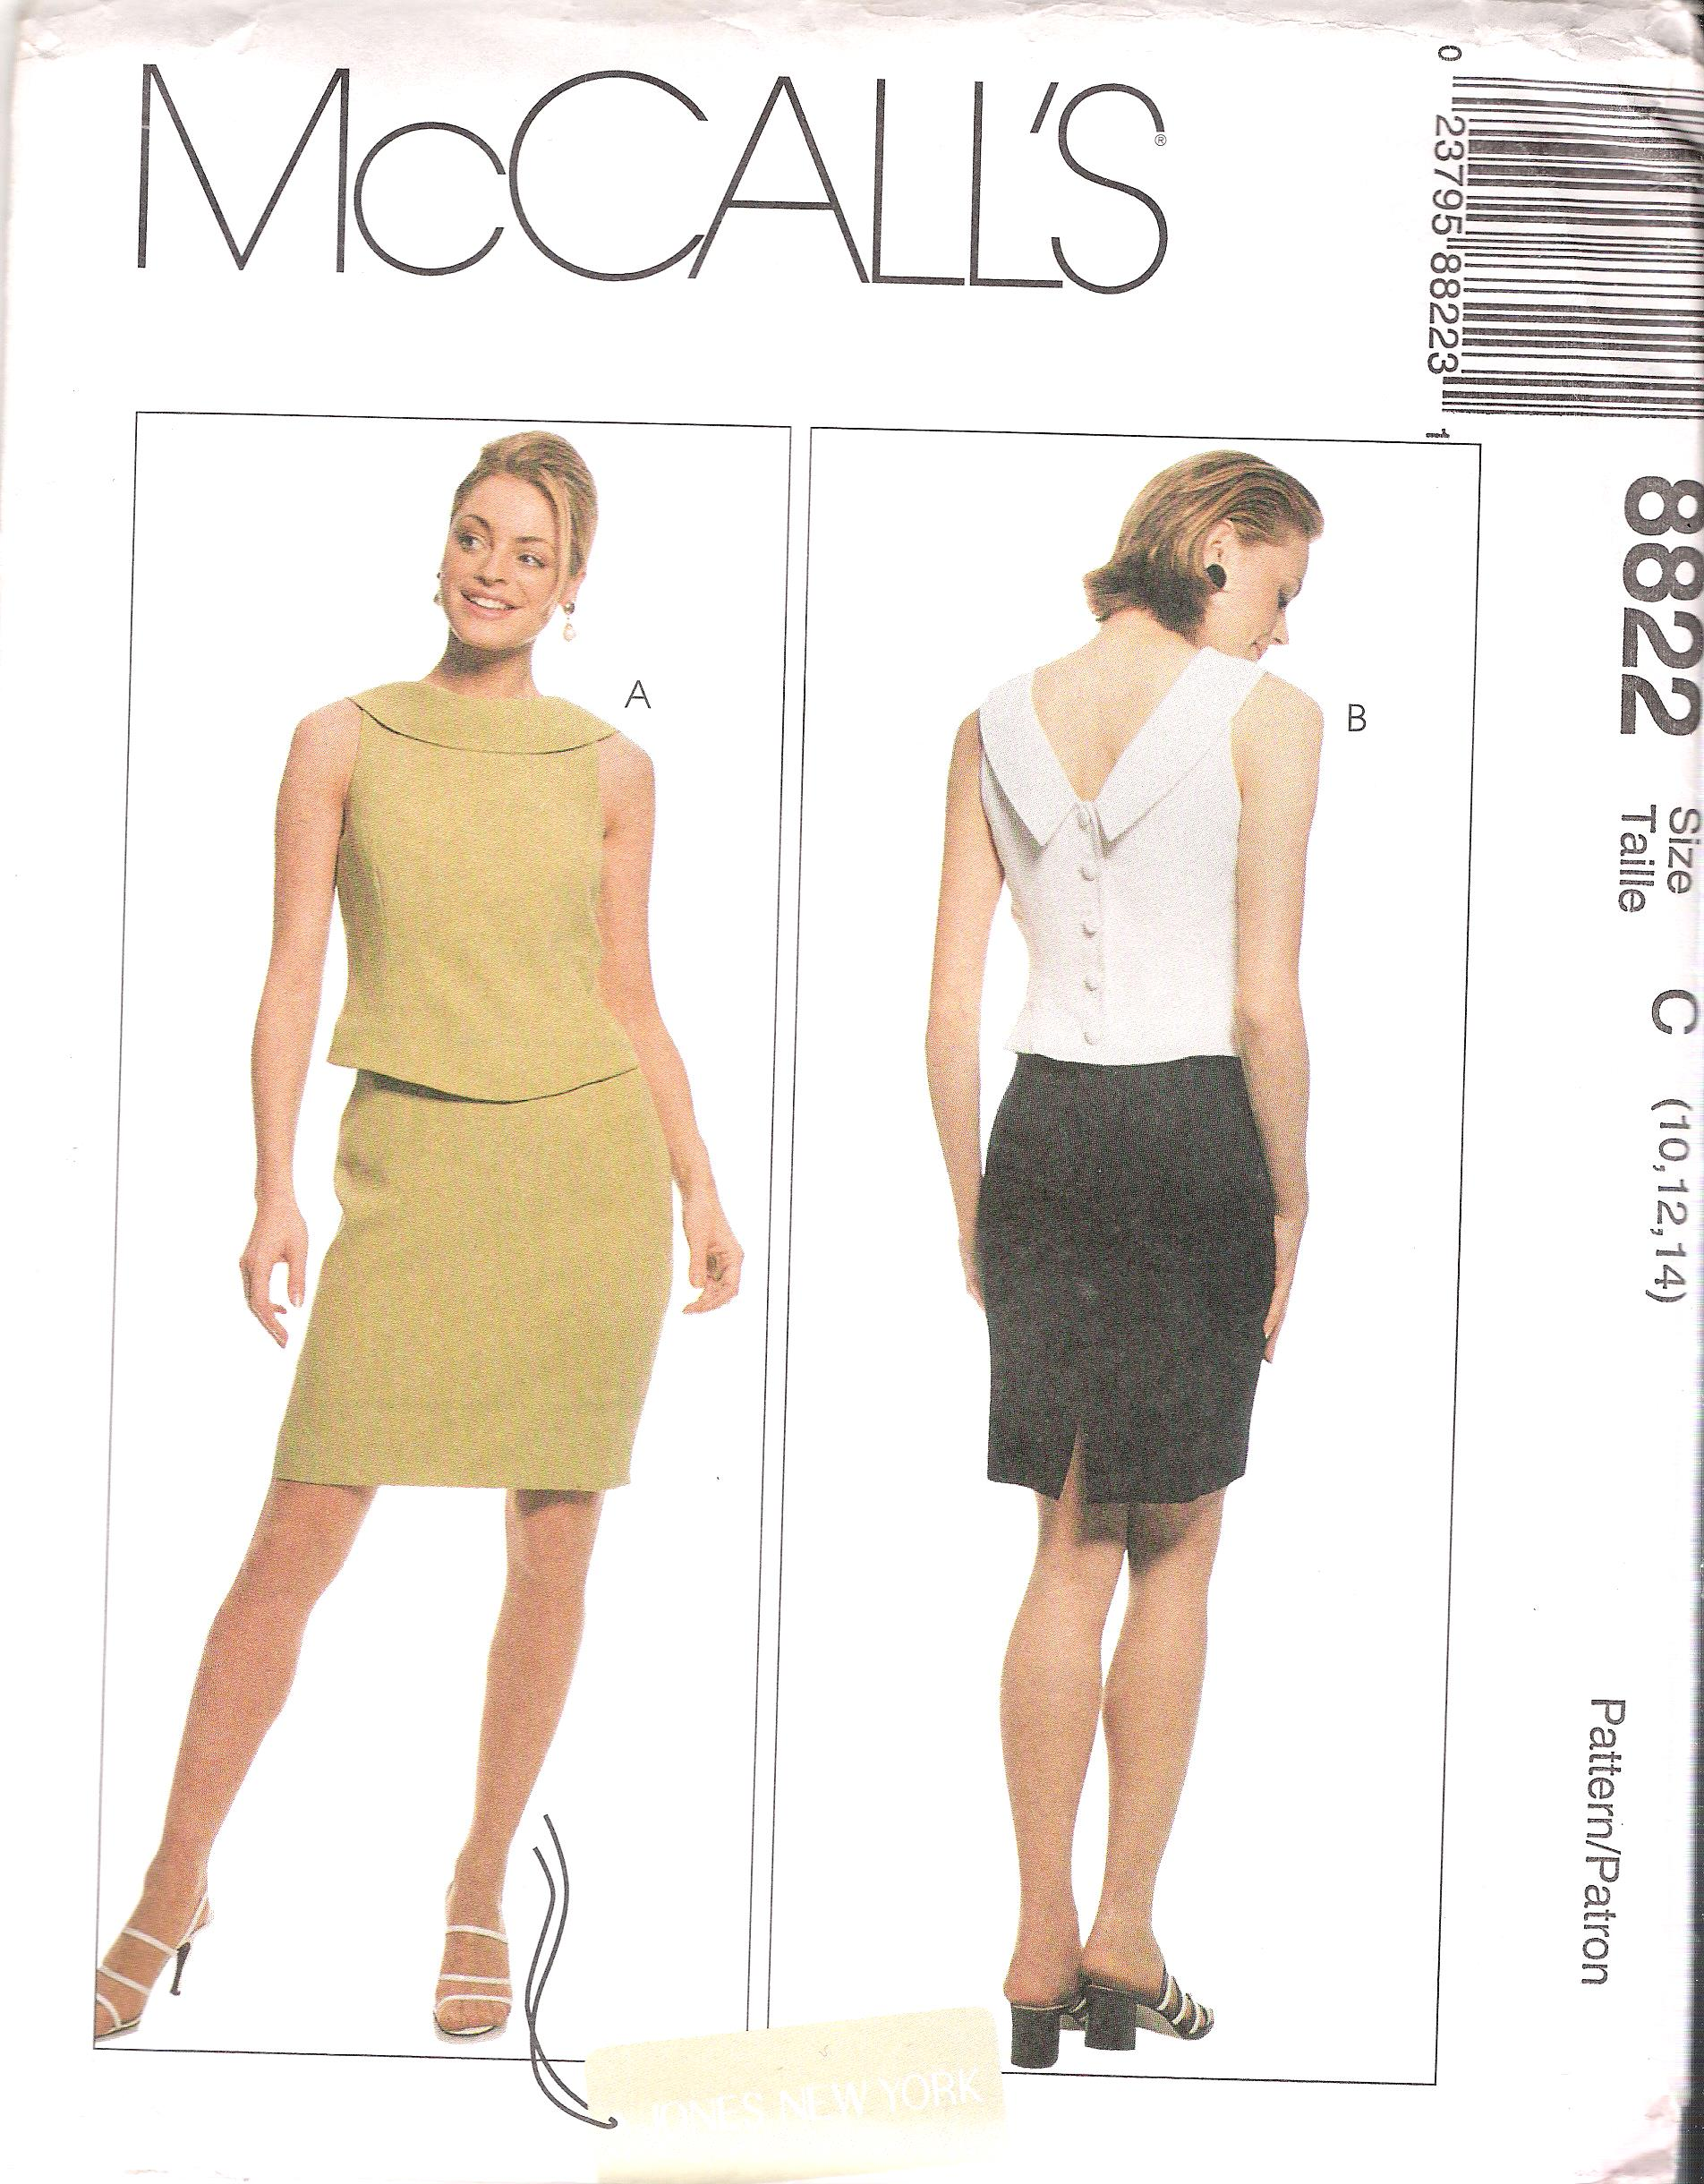 "McCalls 8822 Mock Two Piece Dress Sewing Pattern Size 10-14 Uncut SIZE 10-14 BUST 32.5-36 WAIST 25-28 HIP 34.5-38"" Designer Jones of New York created a fabulous mock two piece classic dress design shown here in sizes 10-14, the pattern is uncut and ready to sew."